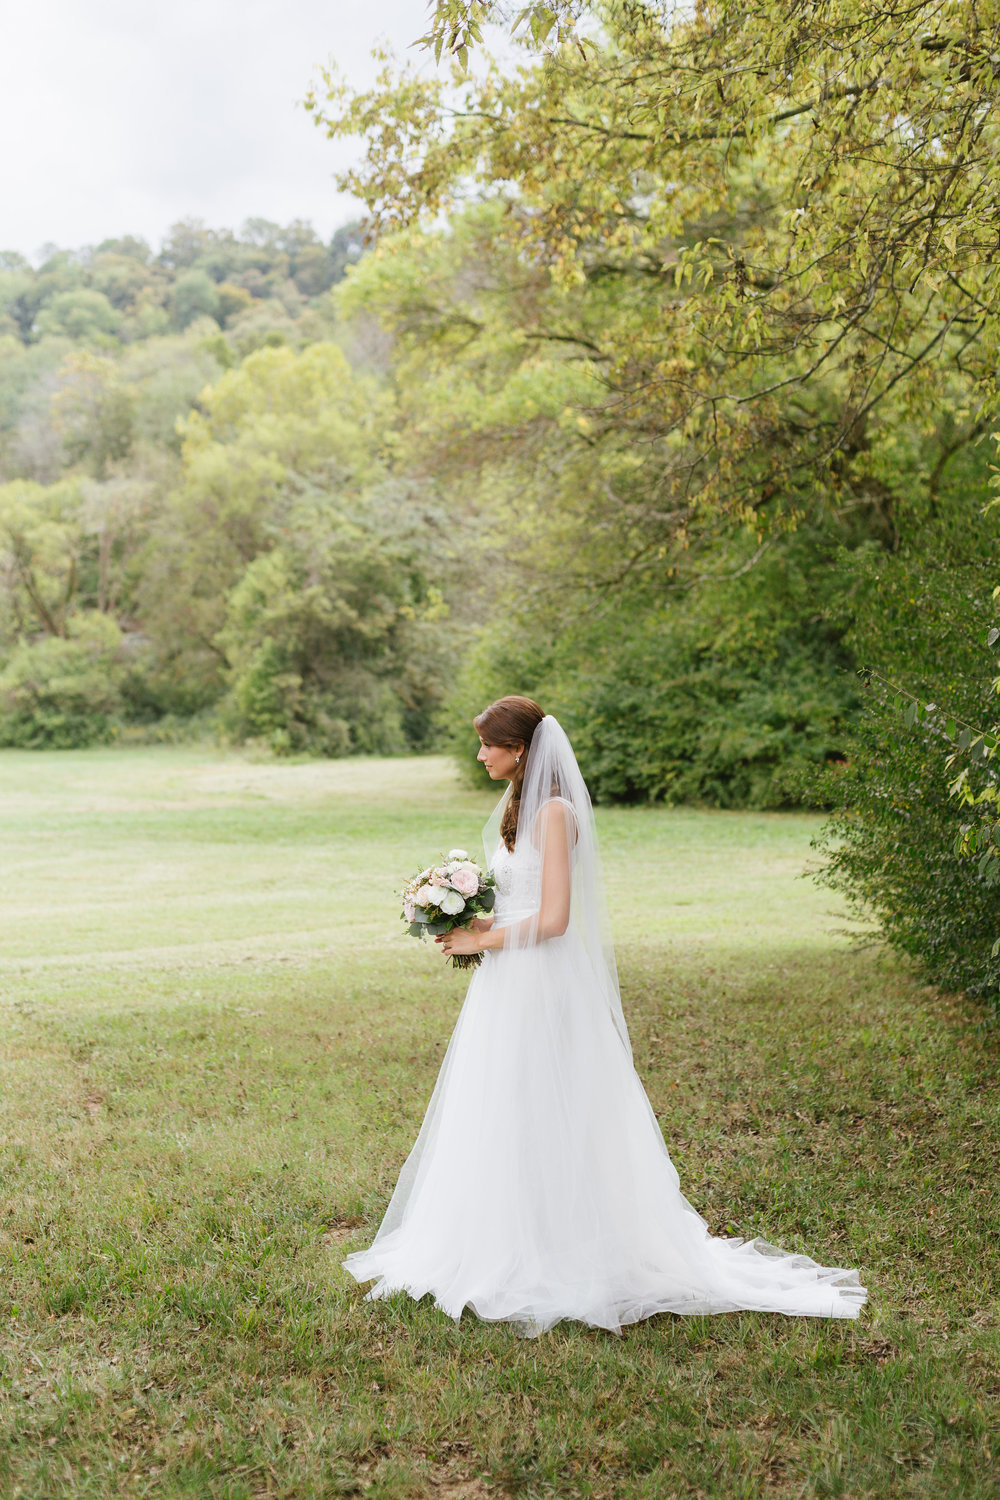 October wedding in the Tennessee Countryside // Organic Floral Design